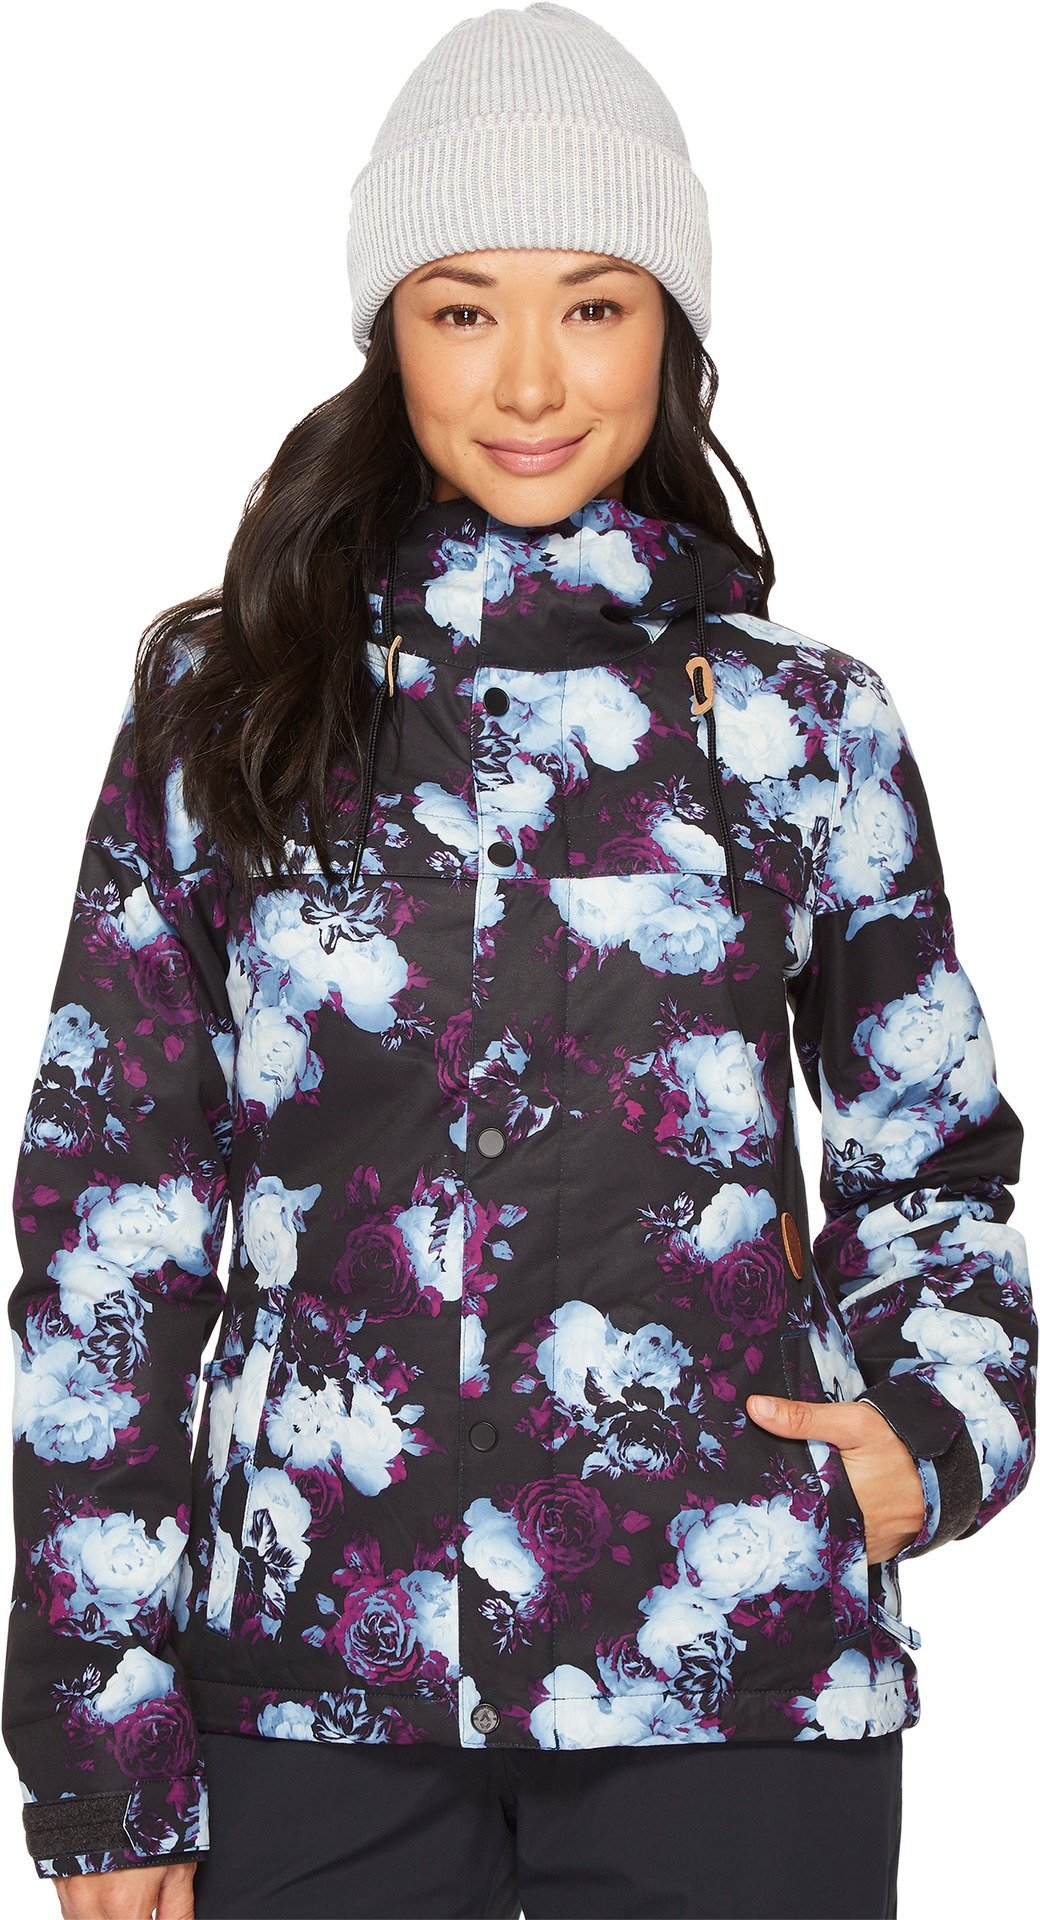 Volcom Snow Women's Bolt Insulated Jacket Multi XX-Small by Volcom